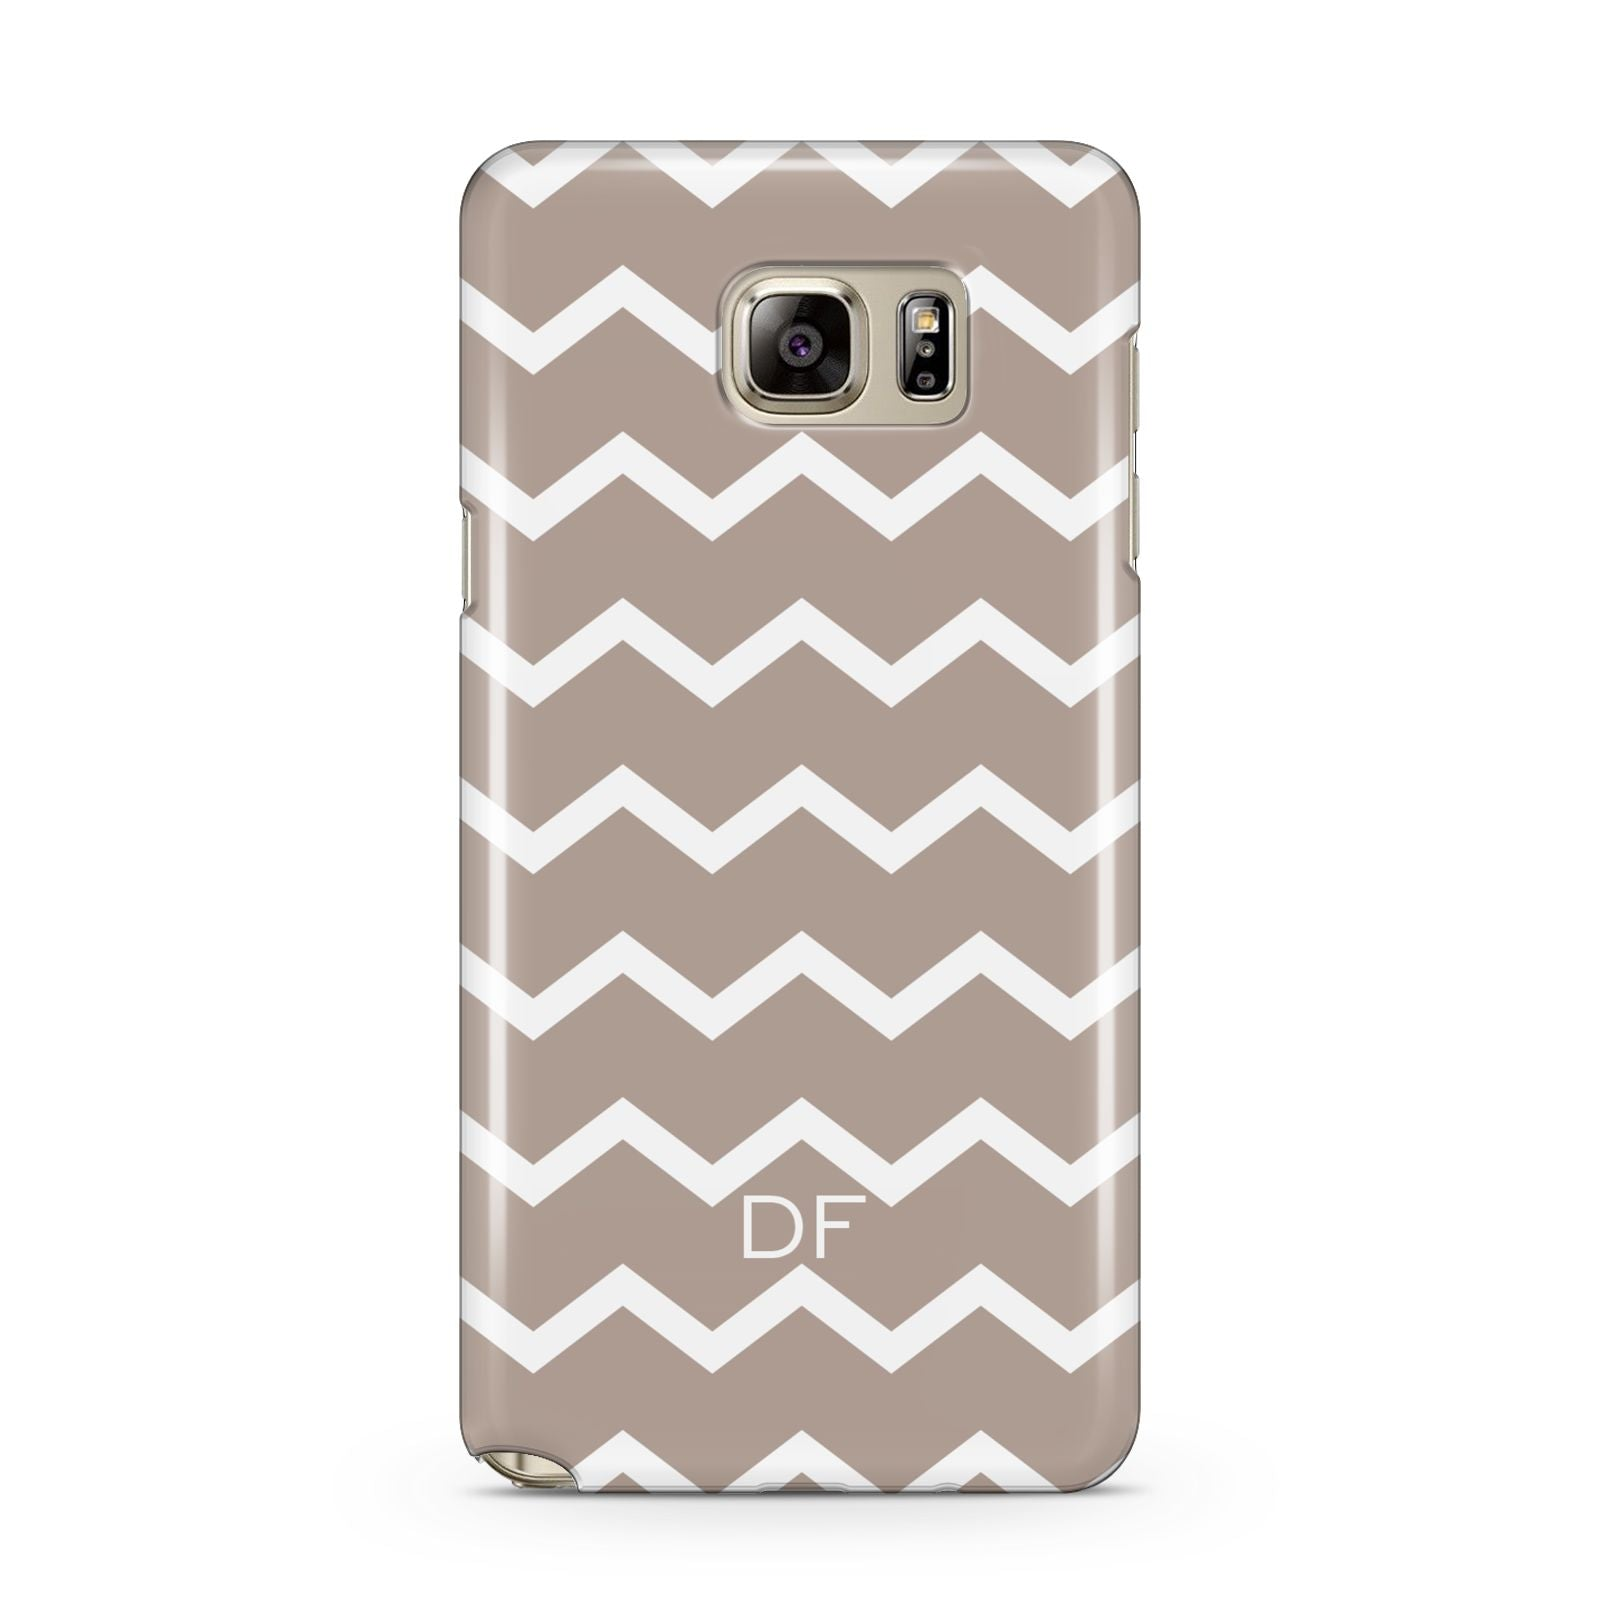 Personalised Chevron Beige Samsung Galaxy Note 5 Case